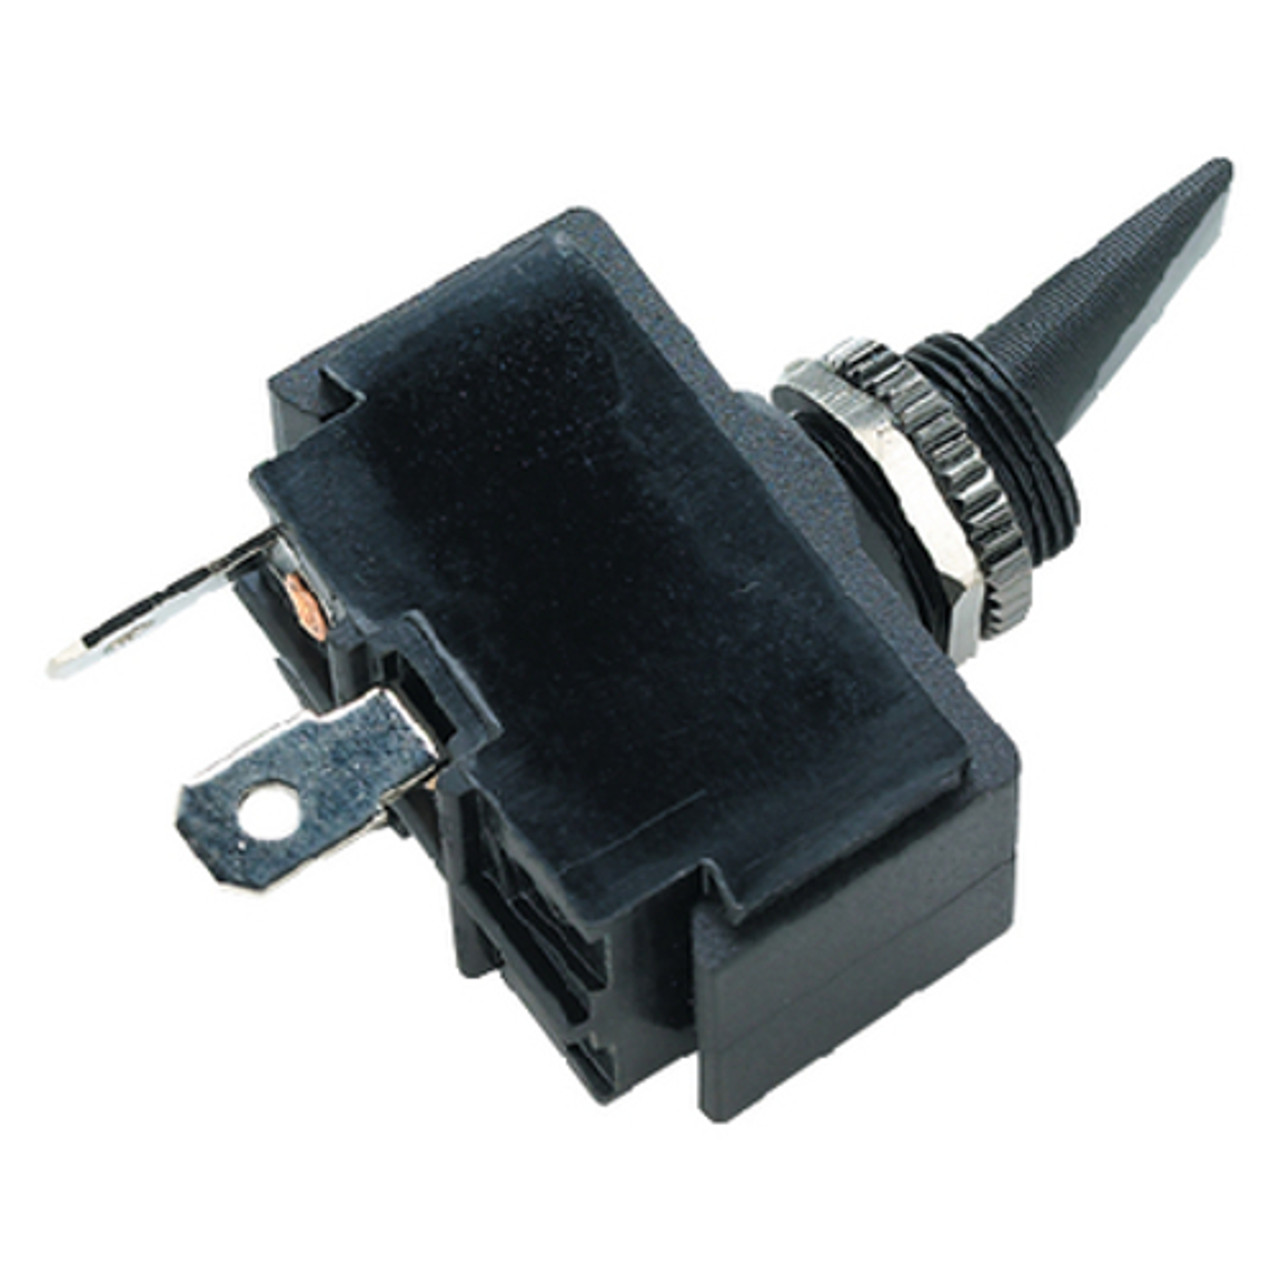 Black SPST 2 Position Momentary On / Off Toggle Switch for Boats